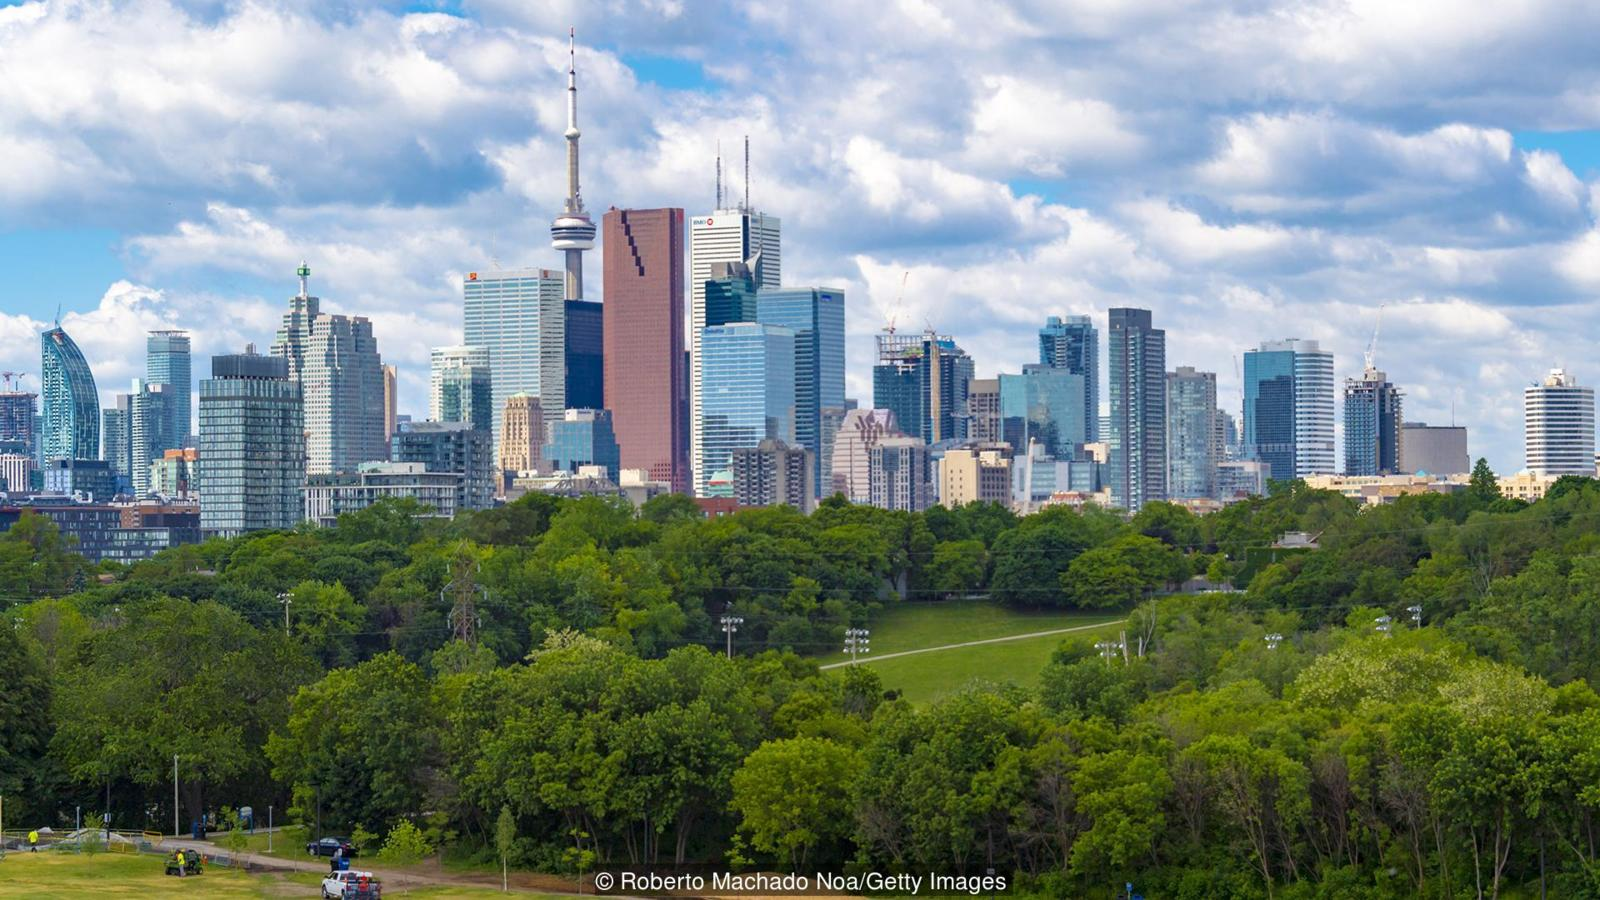 Insider view of Toronto skyline from Broadview Avenue in